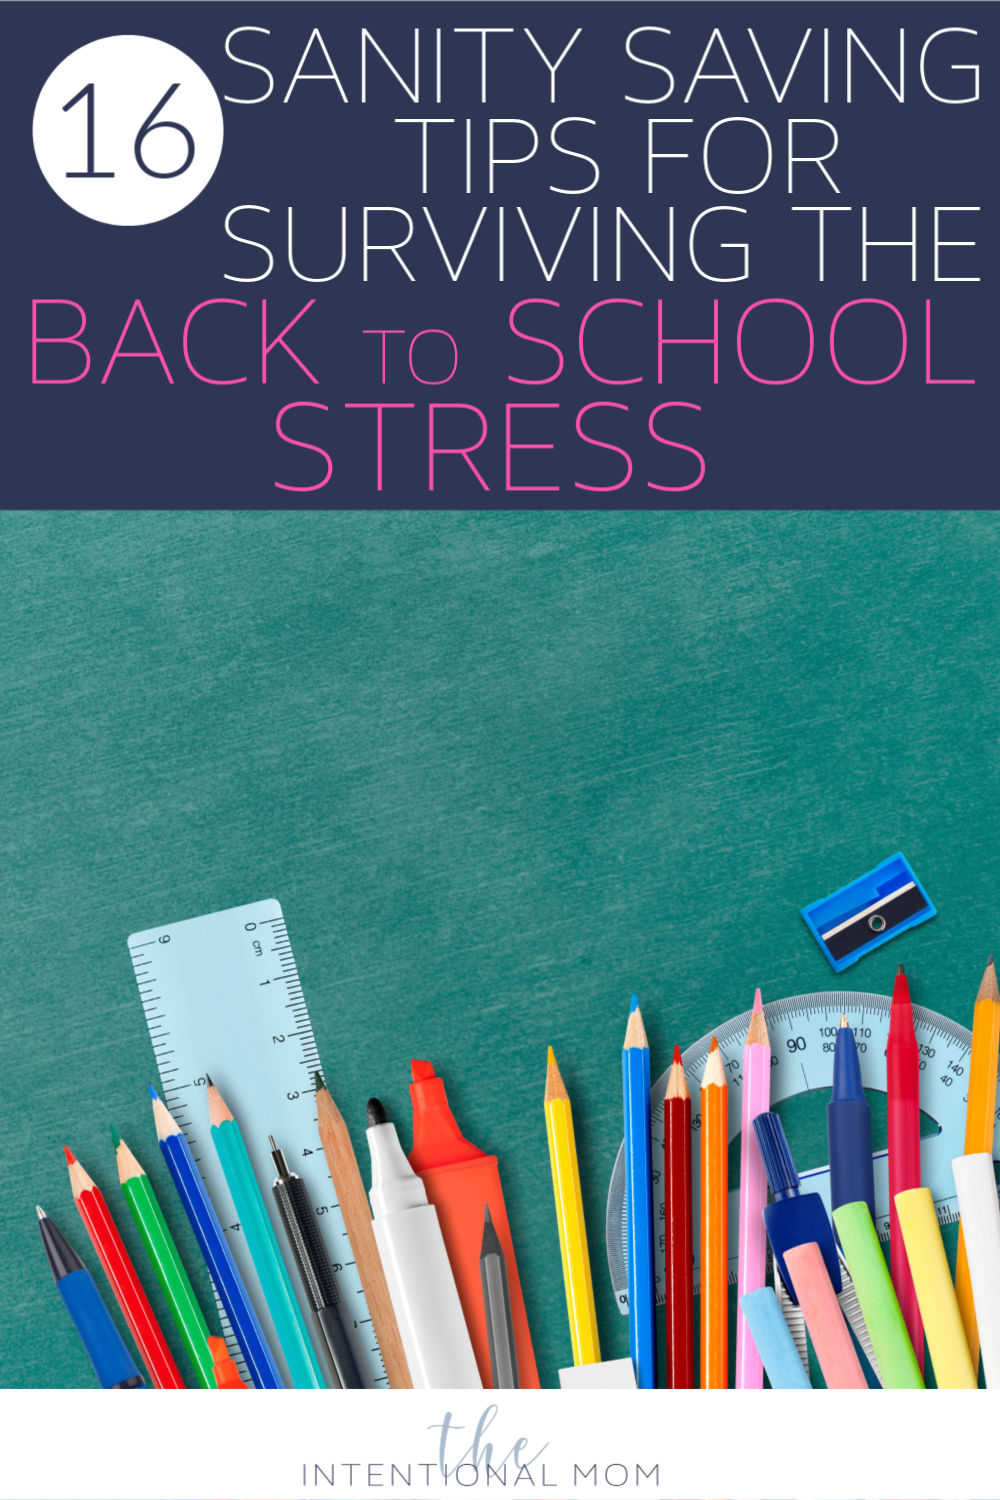 16 Sanity Saving Tips For Surviving The Back To School Stress!